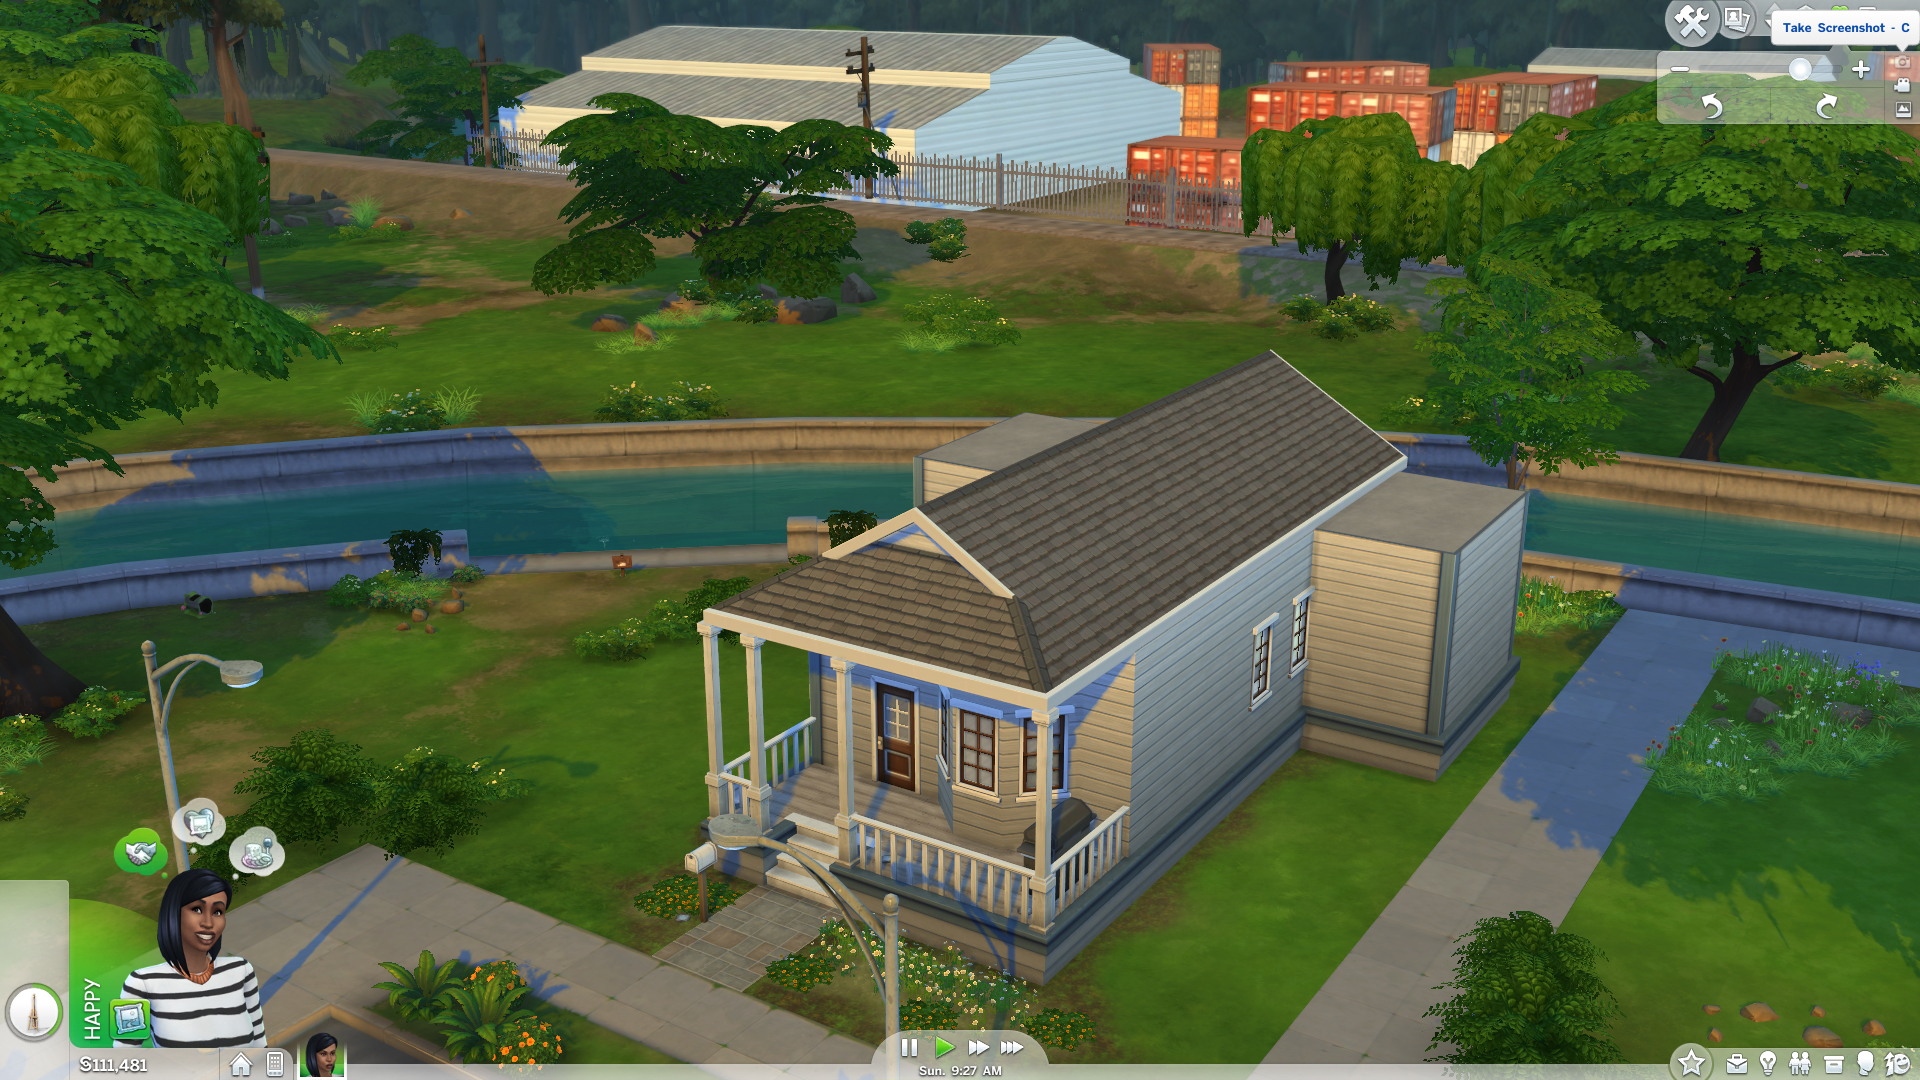 Sims 4 Poses Pool Floats likewise Sims 2 Base Game Houses in addition Deco Shoes Sims 4 further Windows 1 0 Icon Logo in addition Dark Eyeshadow Sims 4. on sims 4 houses